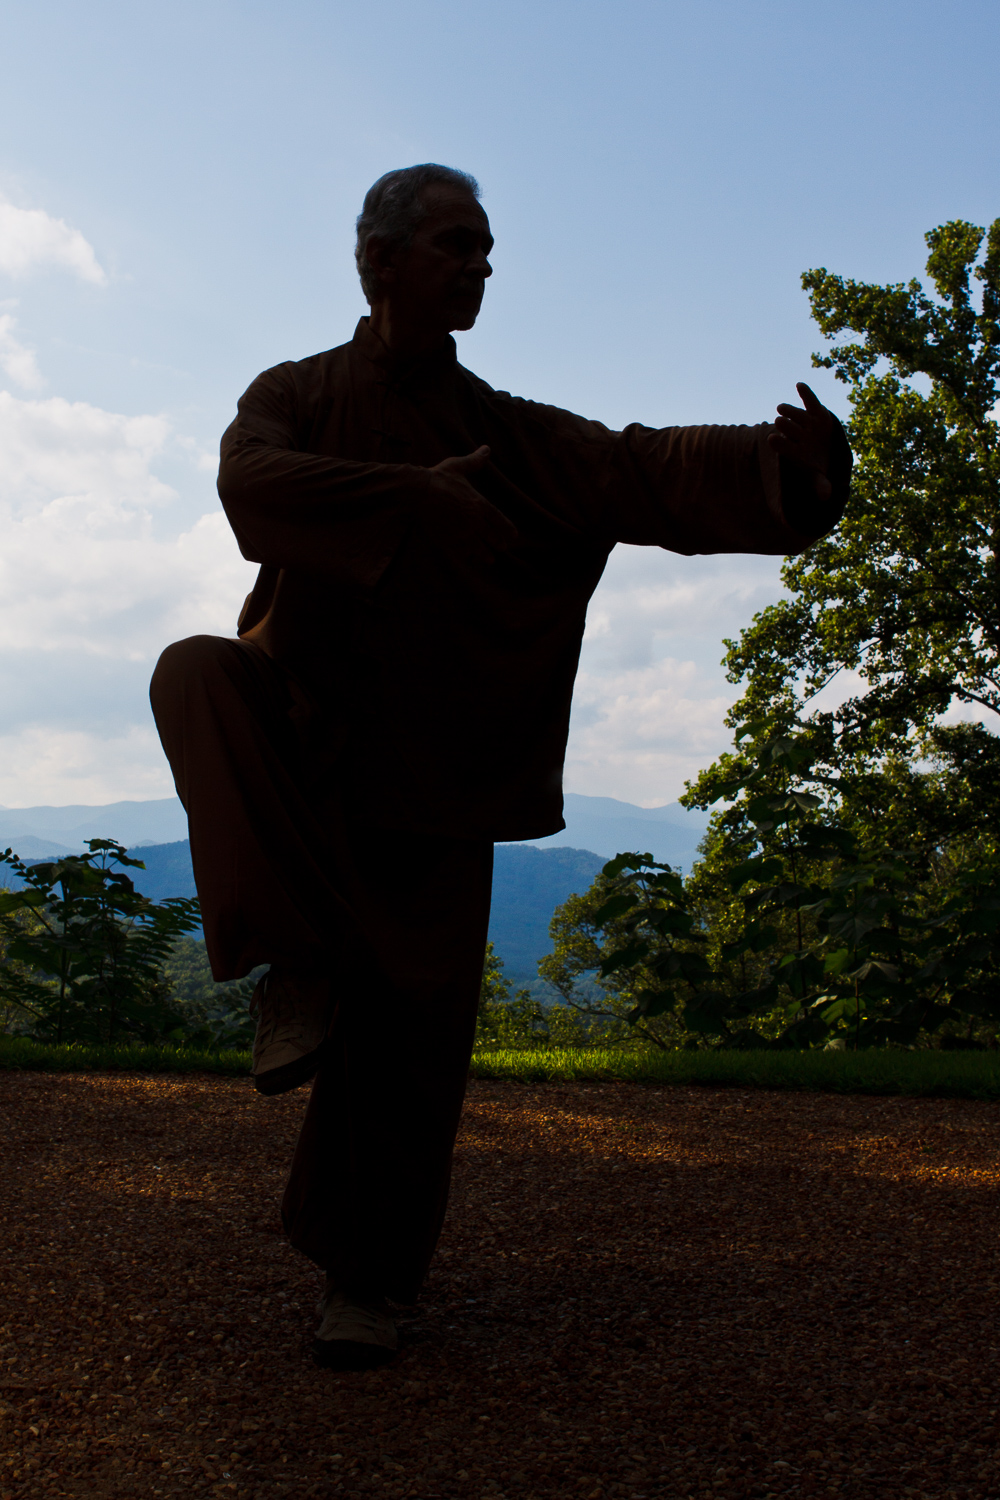 Sifu Paolillo in Bagua posture at Tao Mountain Sanctuary, 2012